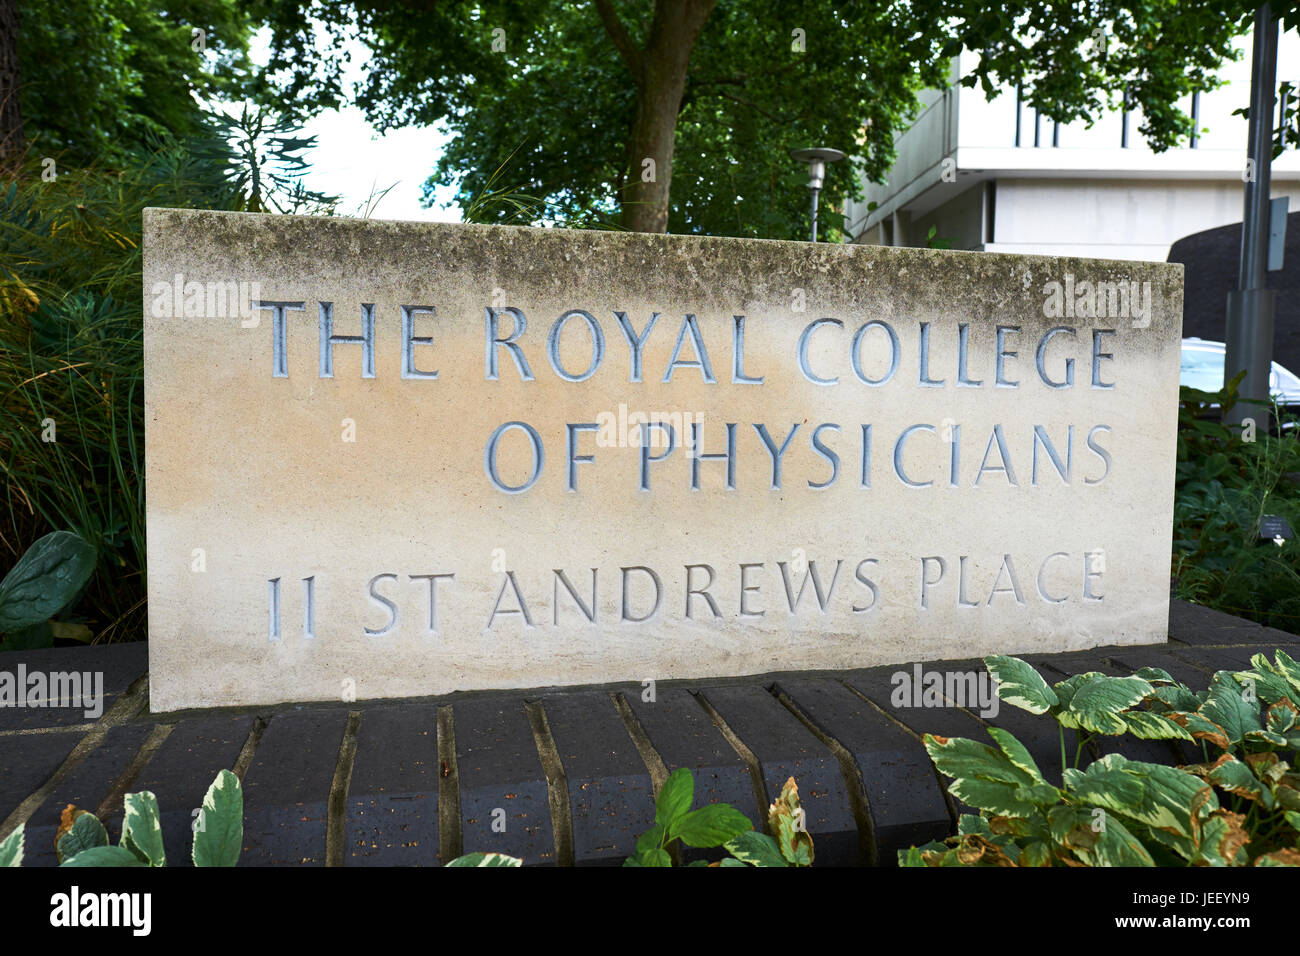 Royal College Of Physicians, St Andrews Place, Regents Park, London, UK - Stock Image